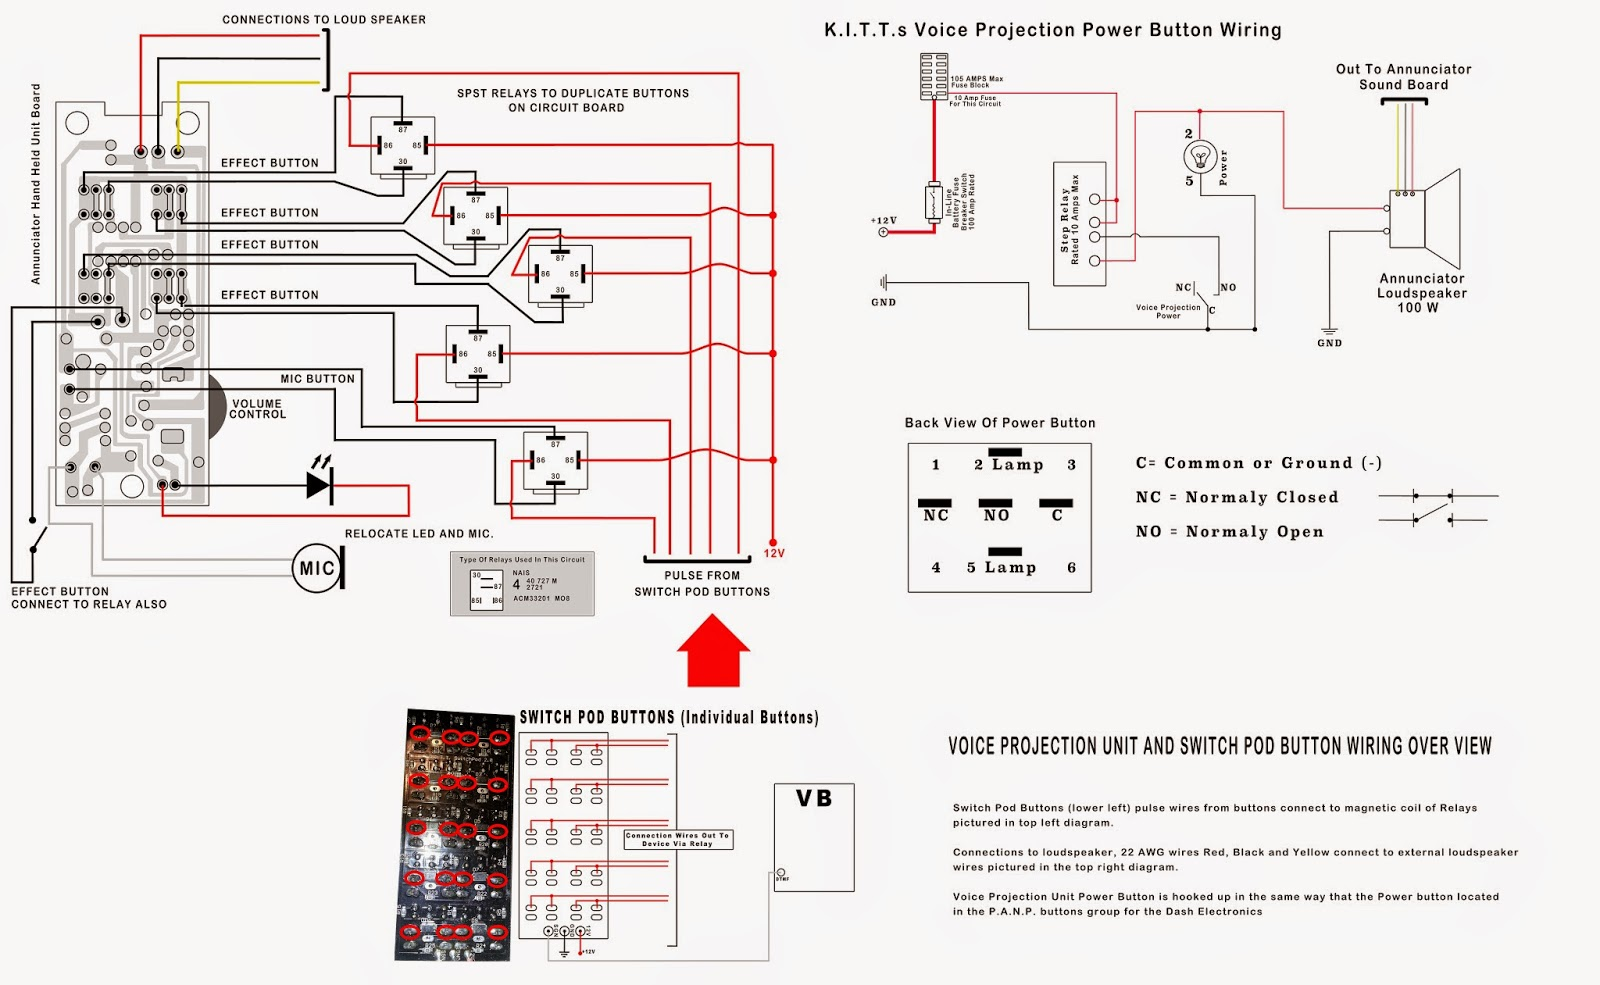 perko 8501 wiring diagram perko get free image about boat battery switch wiring diagram perko 2 [ 1600 x 985 Pixel ]